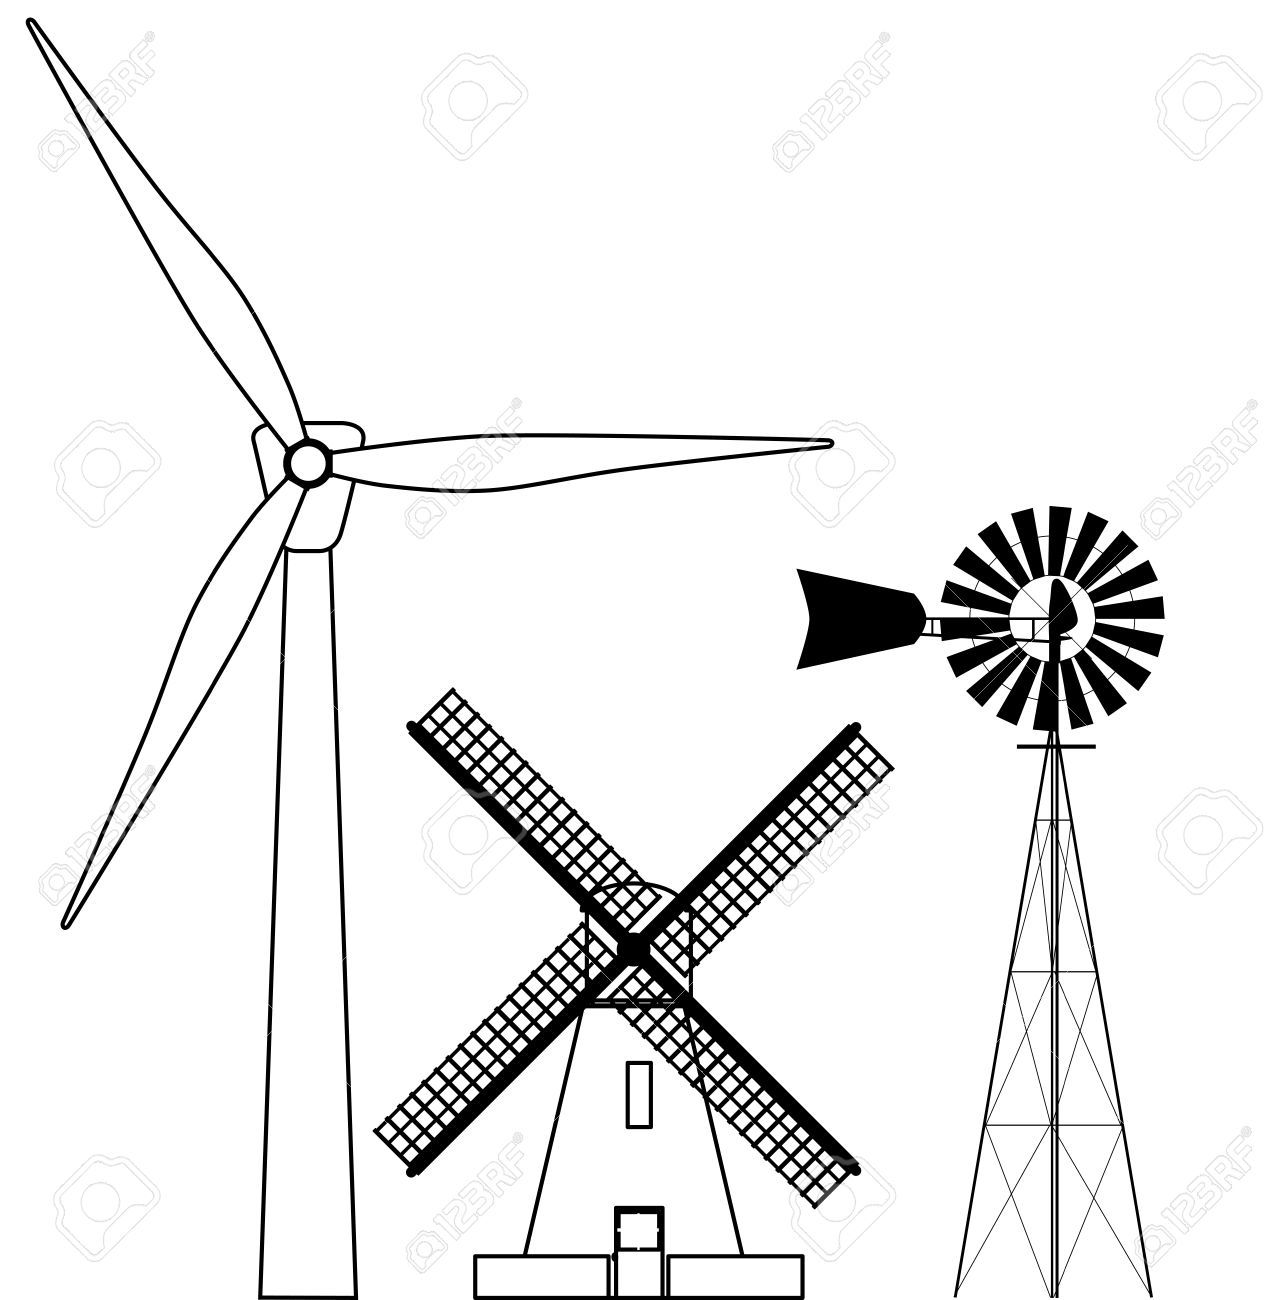 Image Result For Water Windmill Drawings Windmill Drawing Windmill Drawings